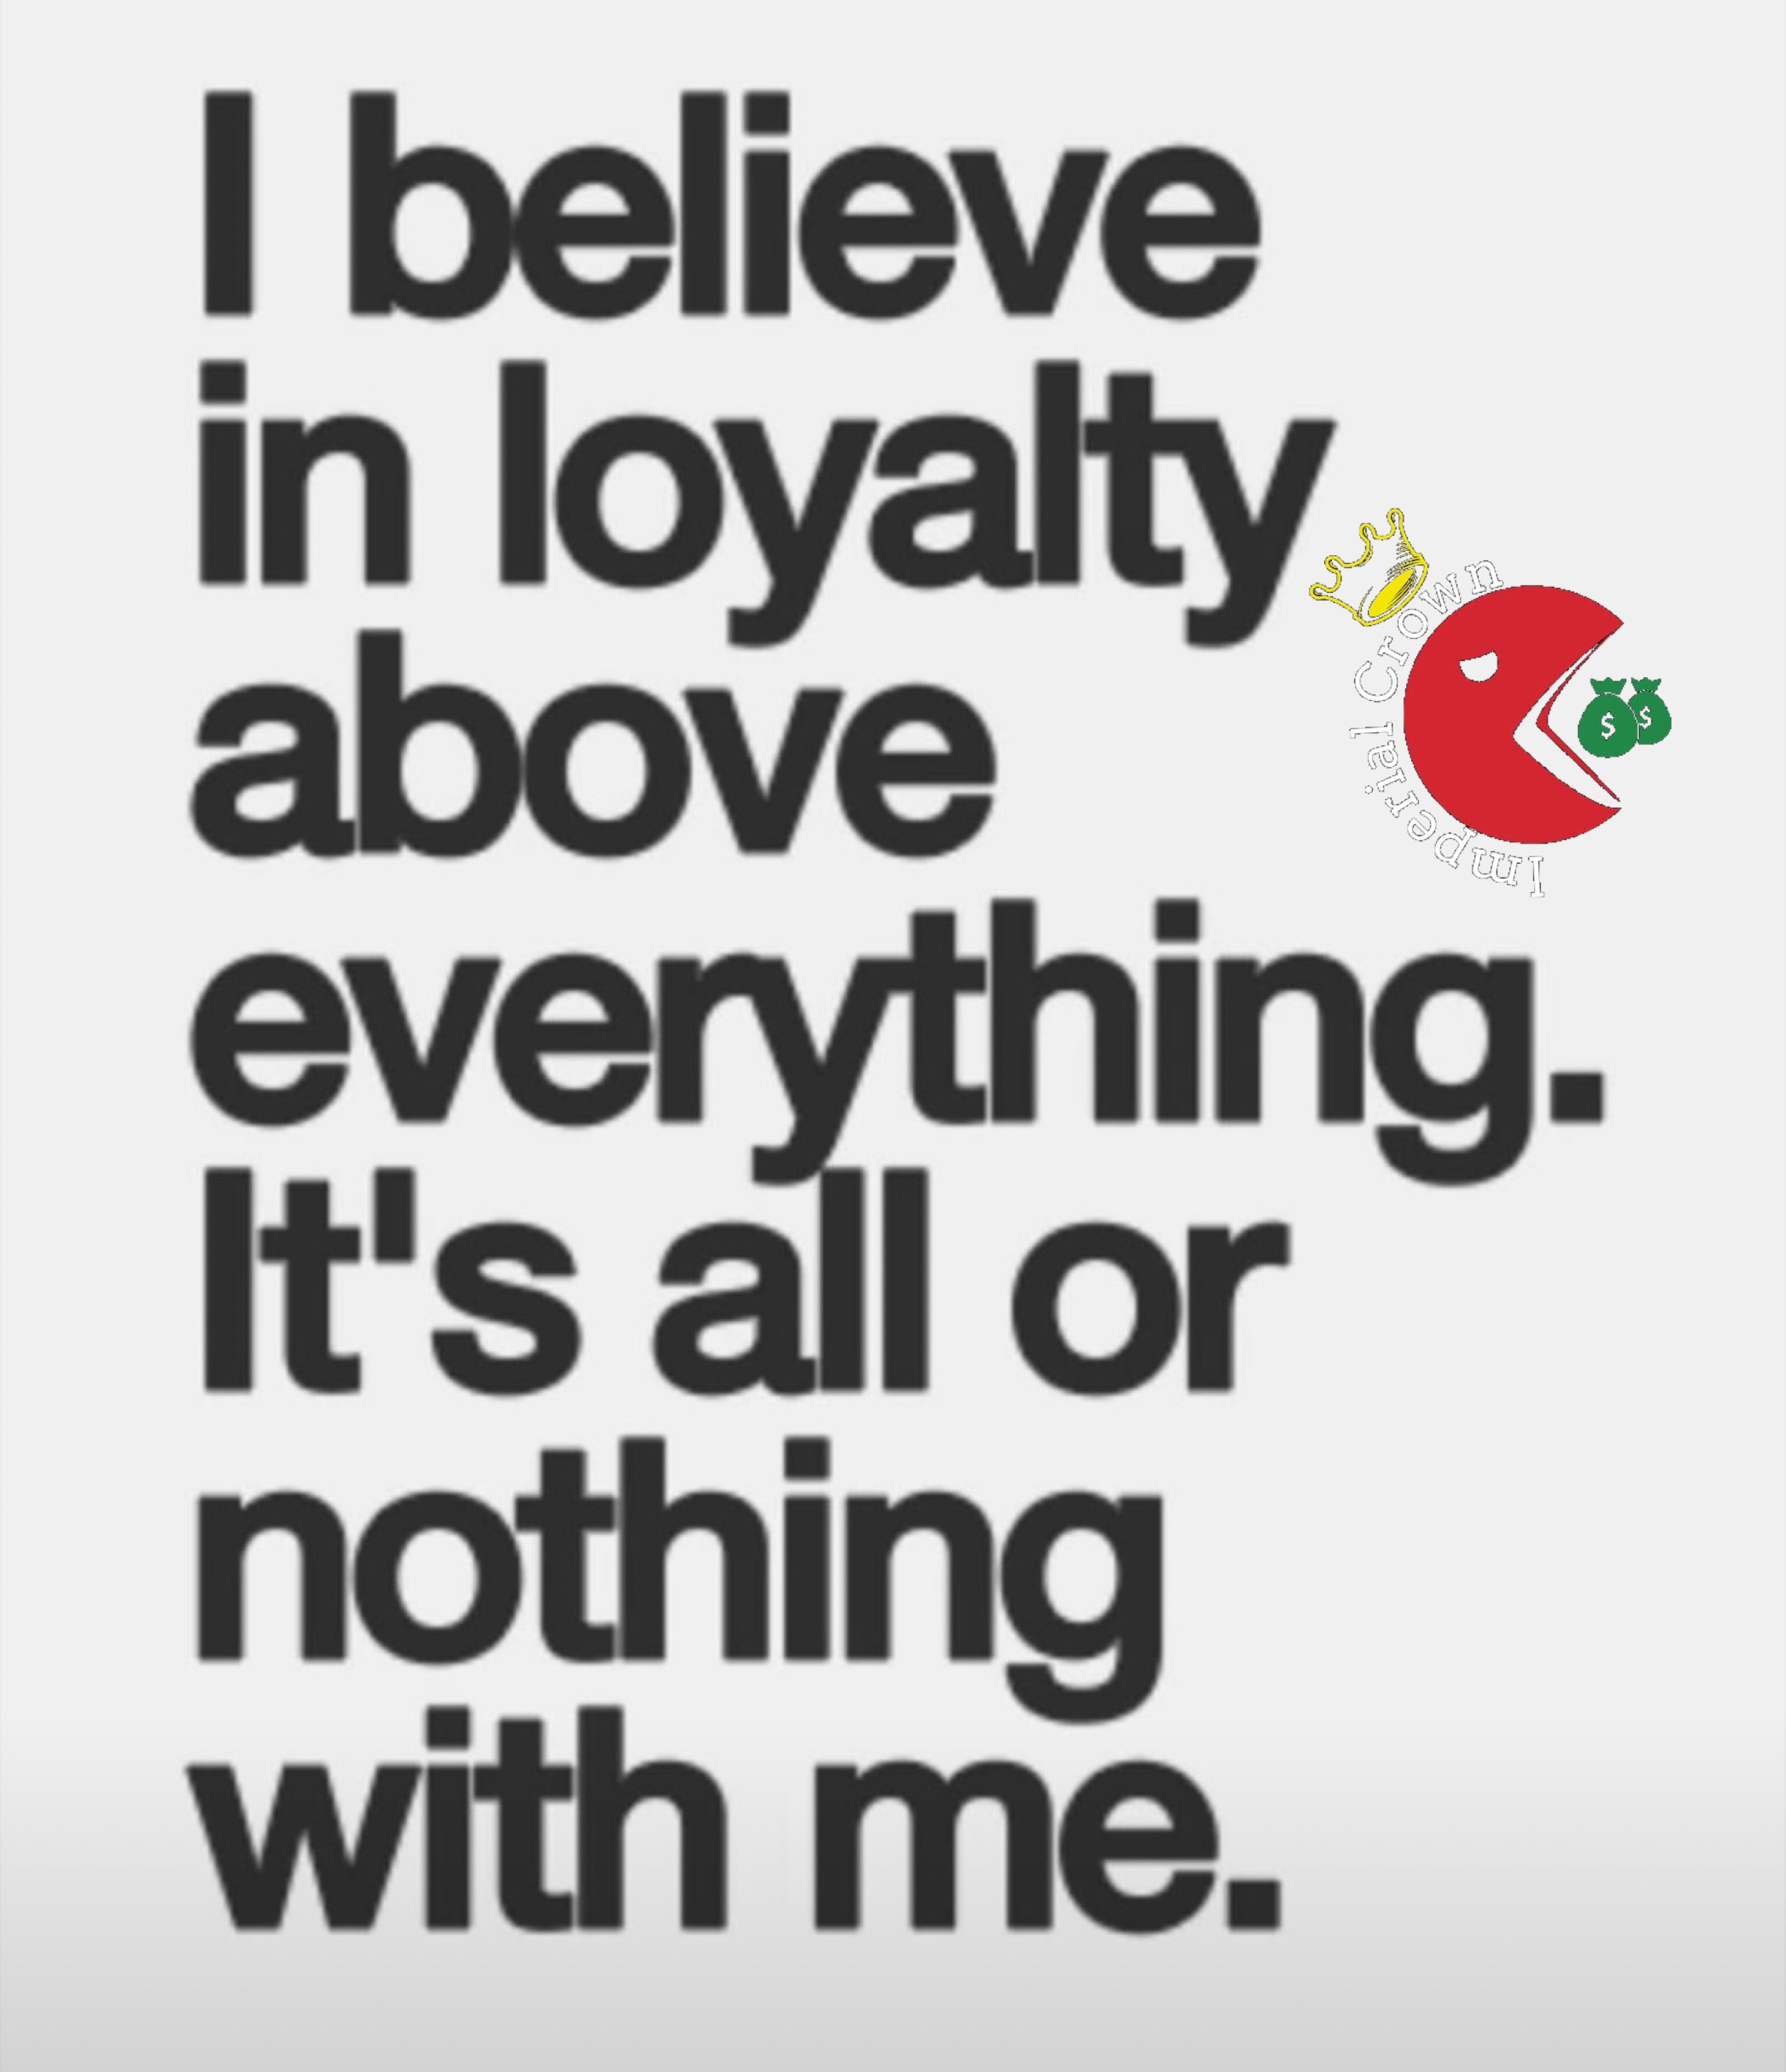 I believe in loyalty above everything its all or nothing with me